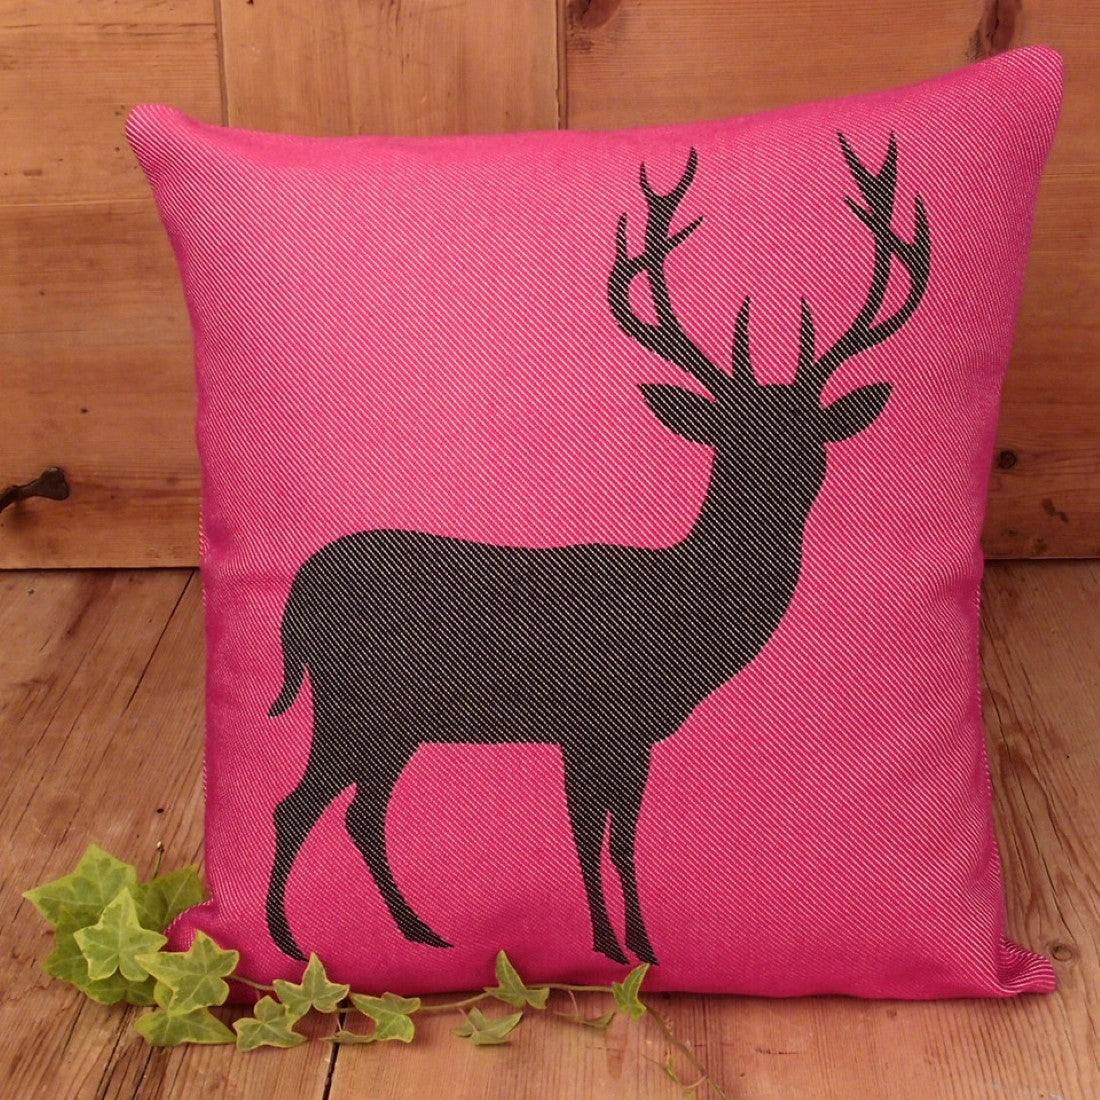 Federa cuscino fantasia cervo, fucsia nero, stile tirolese country - Gaidra HOME